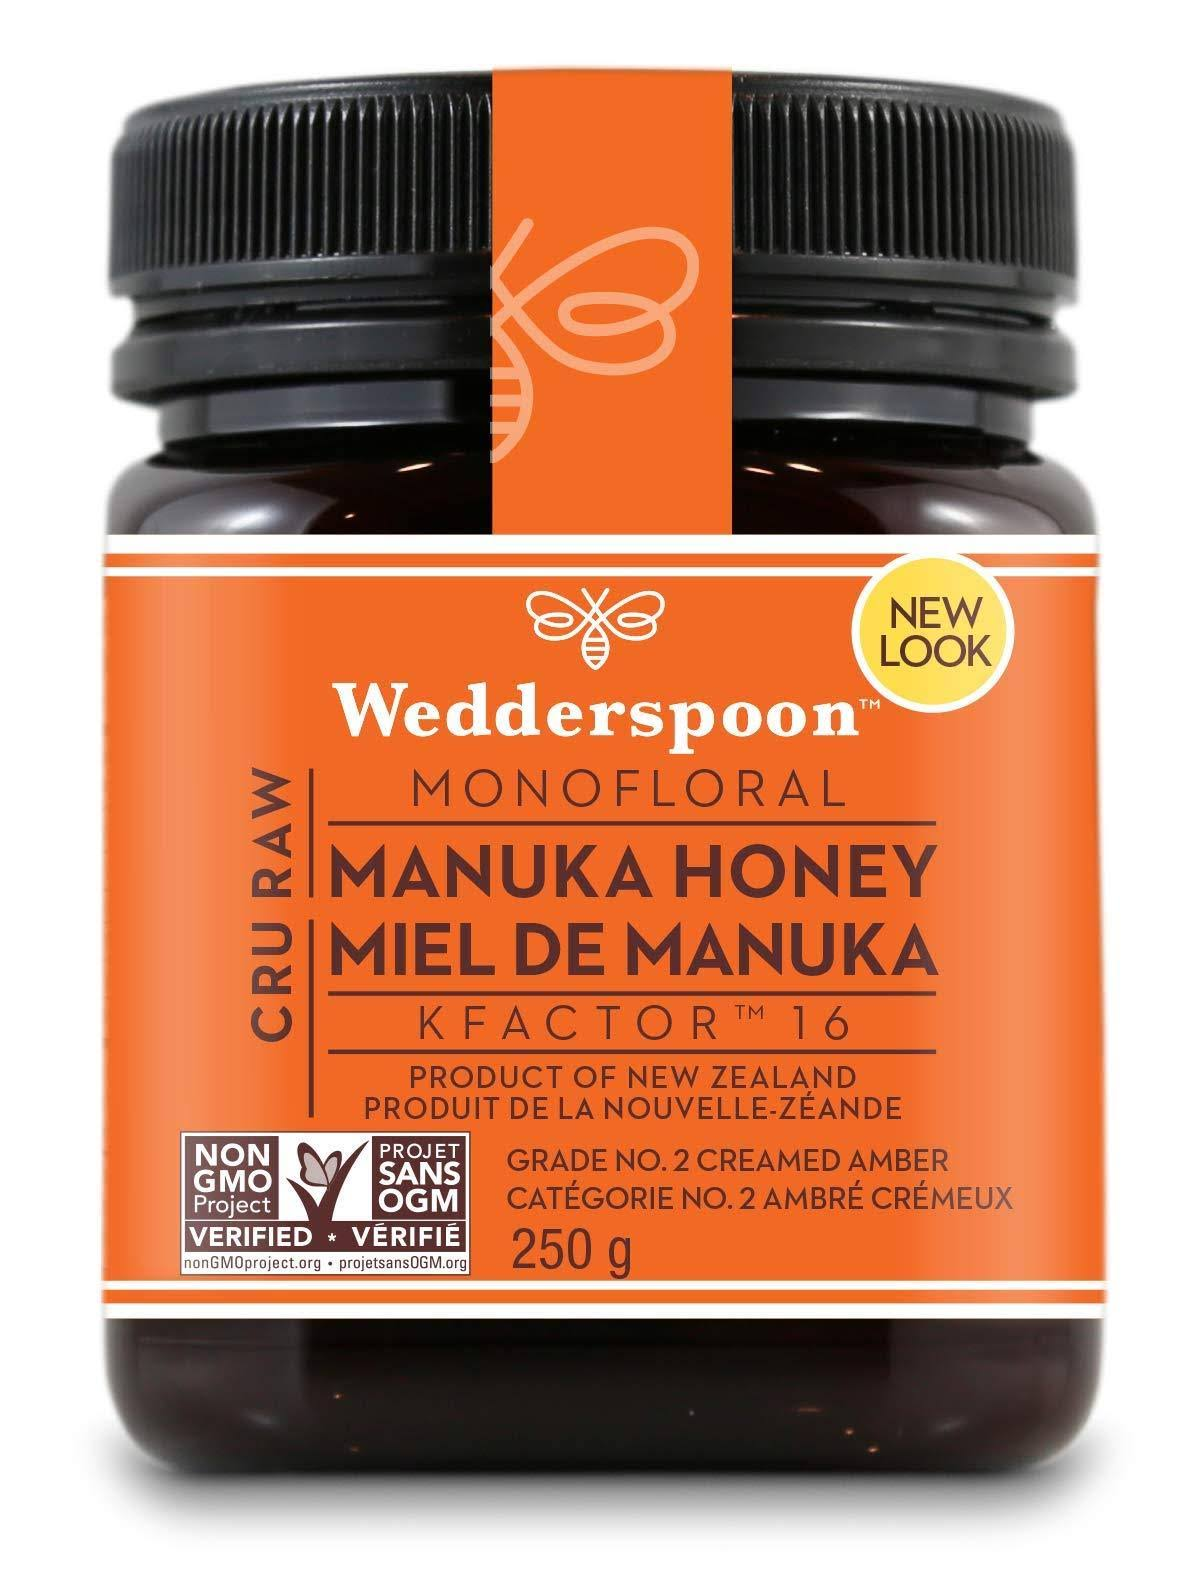 Wedderspoon 100 Raw Manuka Honey KFactor